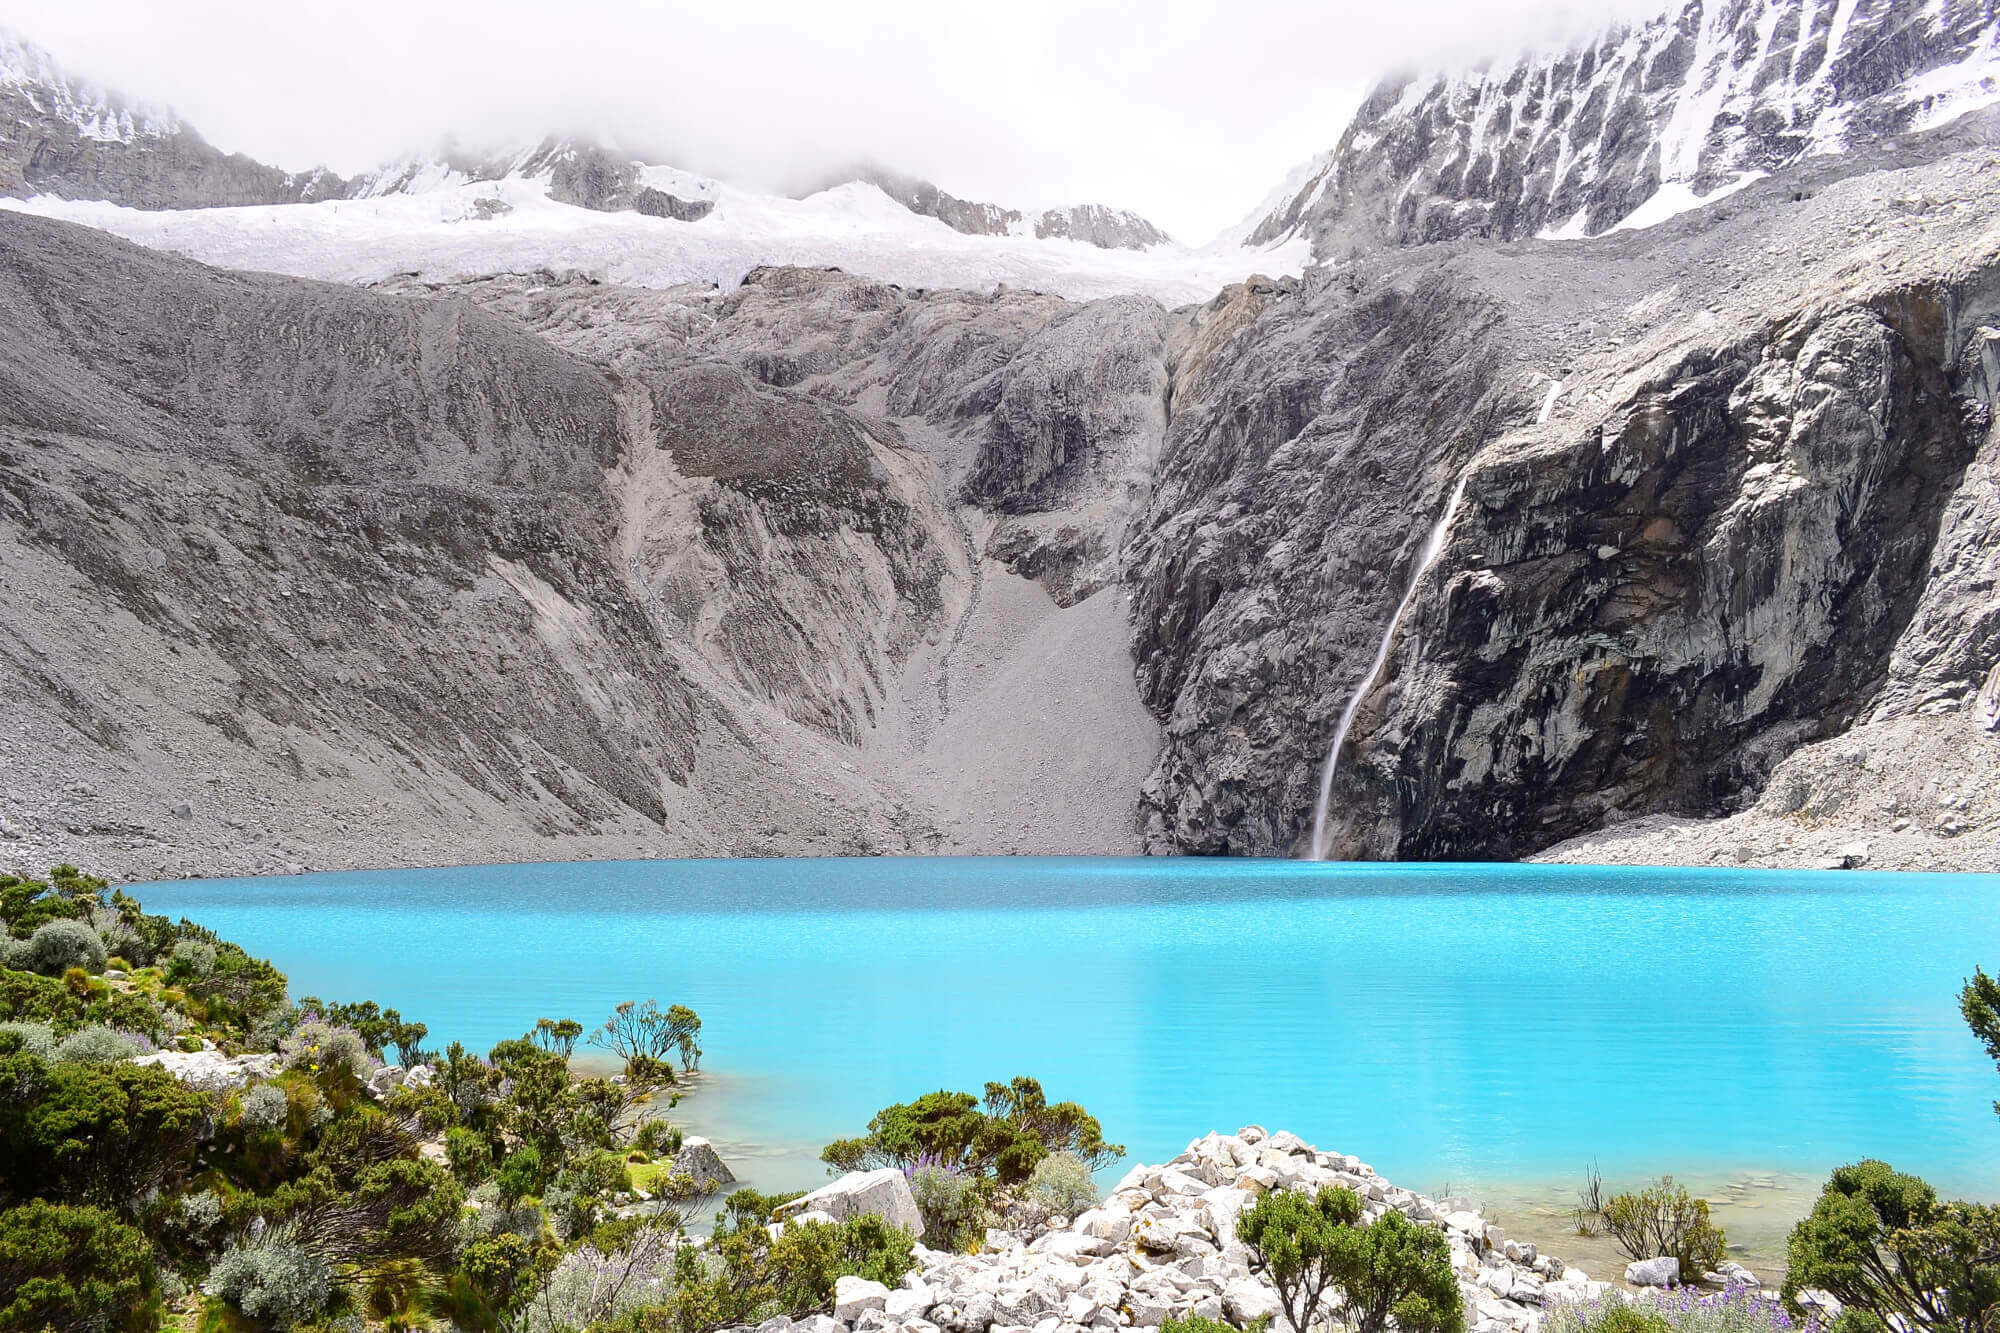 Hiking Laguna 69 in Huaraz, Peru: Everything You Need to Know